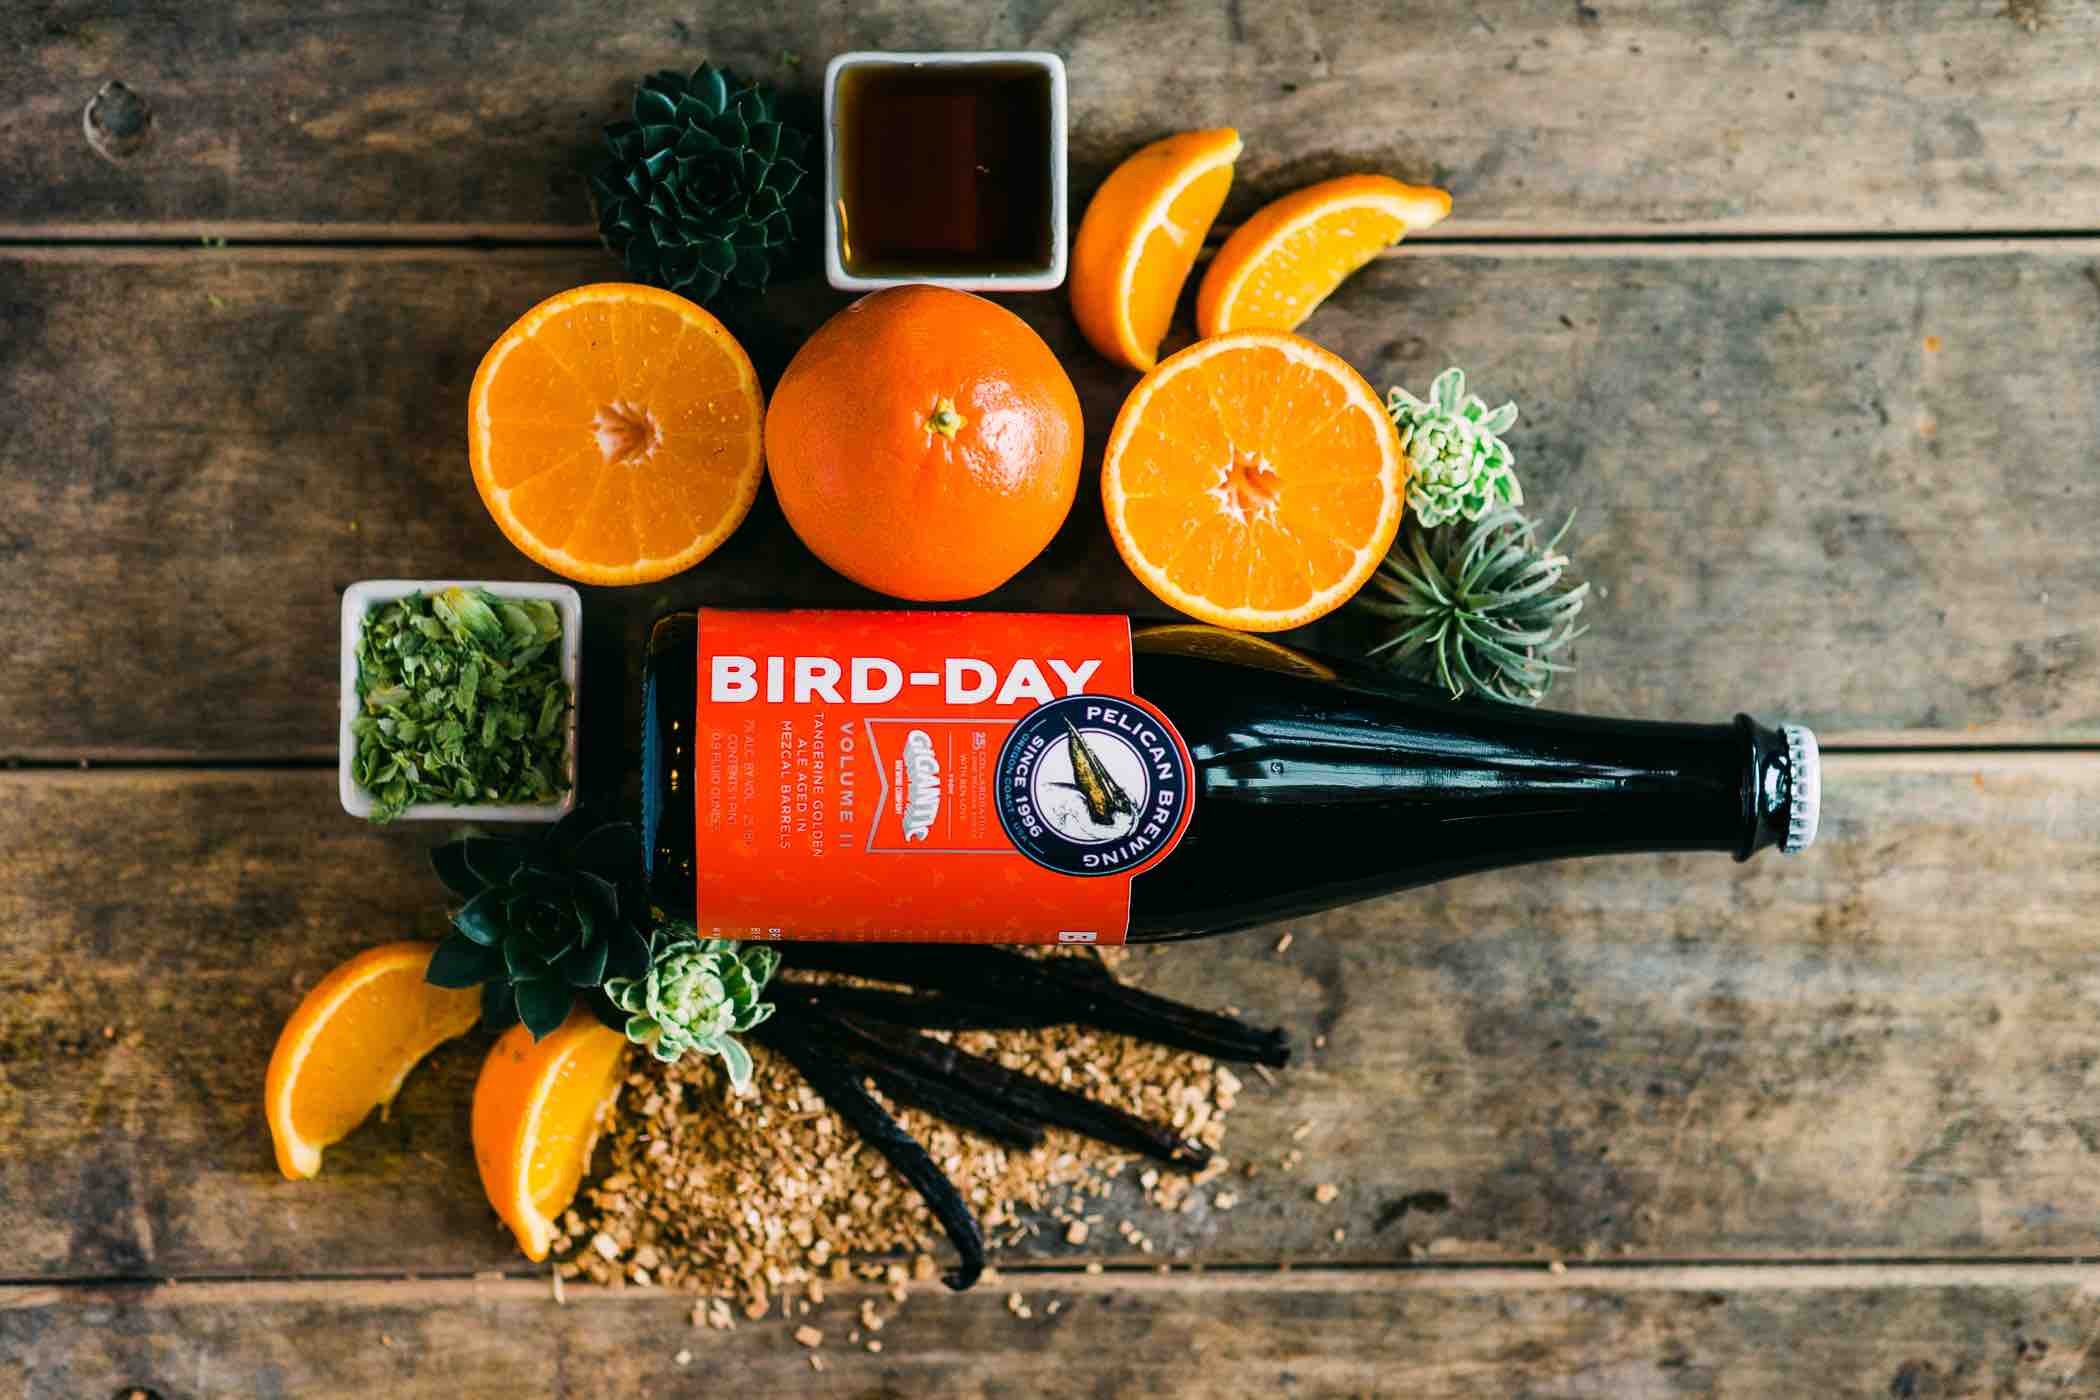 Pelican Brewing Bird-Day Volume II is a colaboration with Ben Love of Gigantic Brewing. (image courtesy of Pelican Brewing)